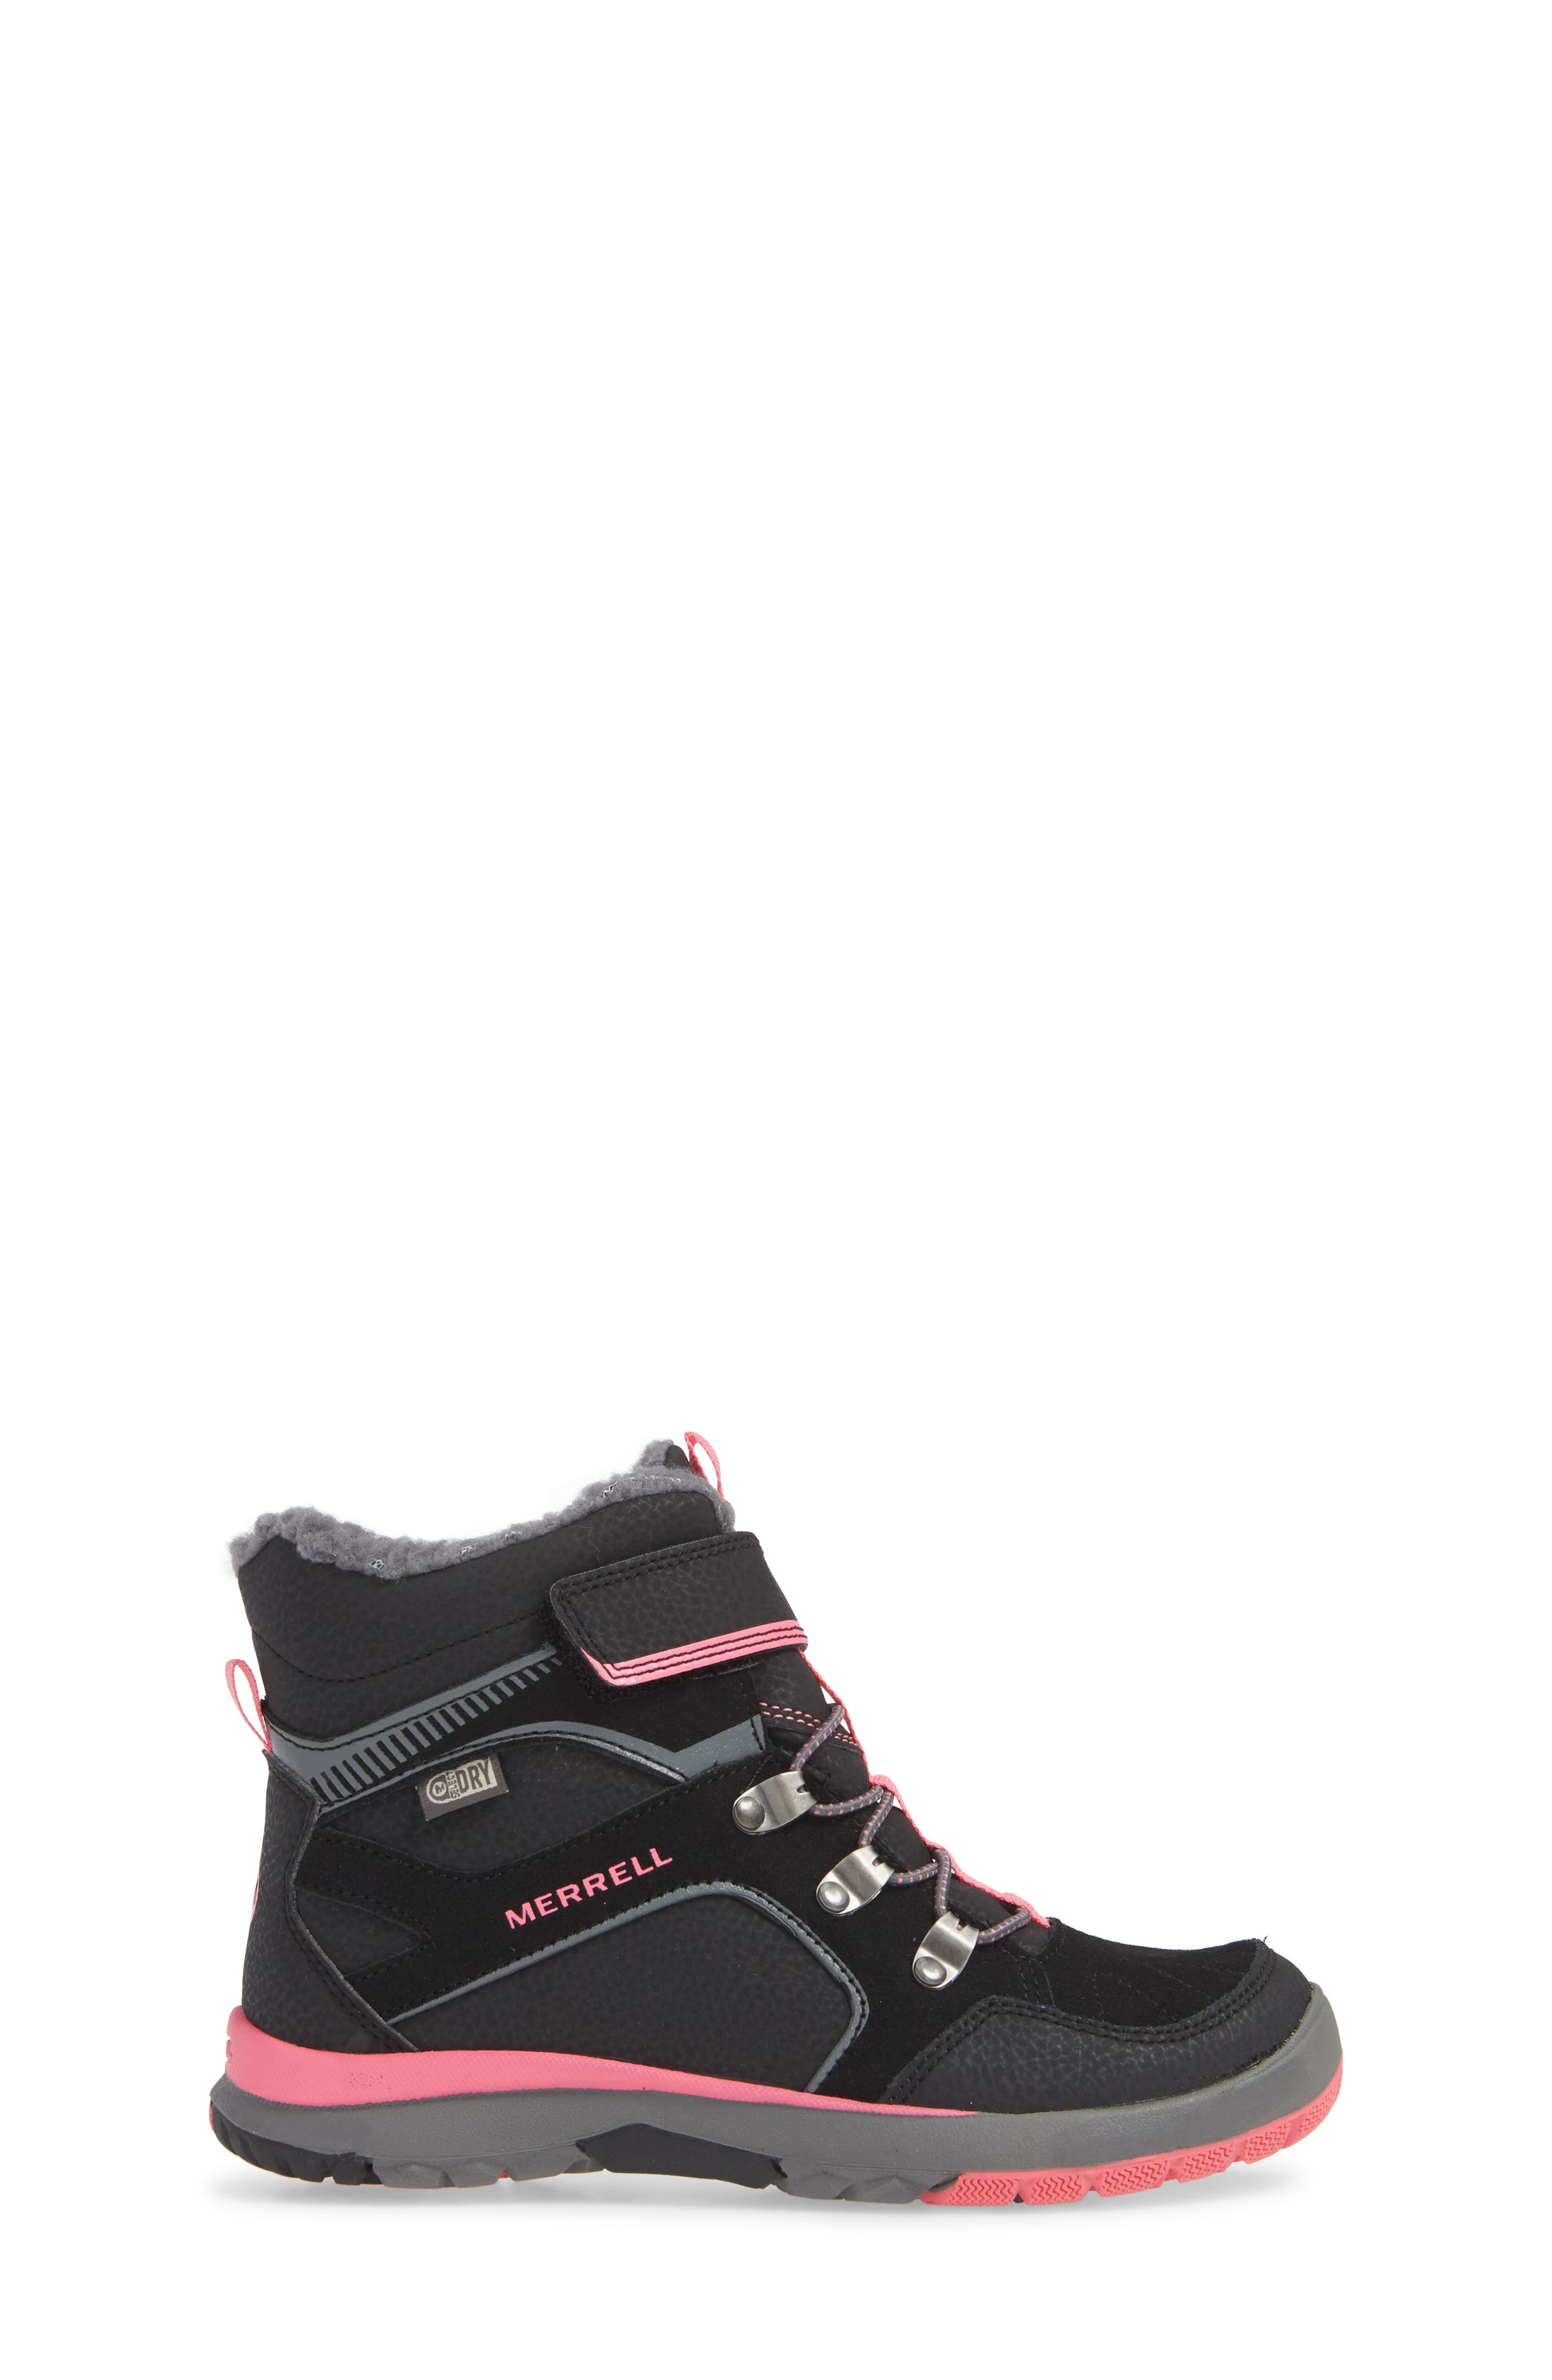 Moab FST Polar Mid Waterproof Insulated Sneaker Boot,                             Alternate thumbnail 3, color,                             BLACK/ PINK